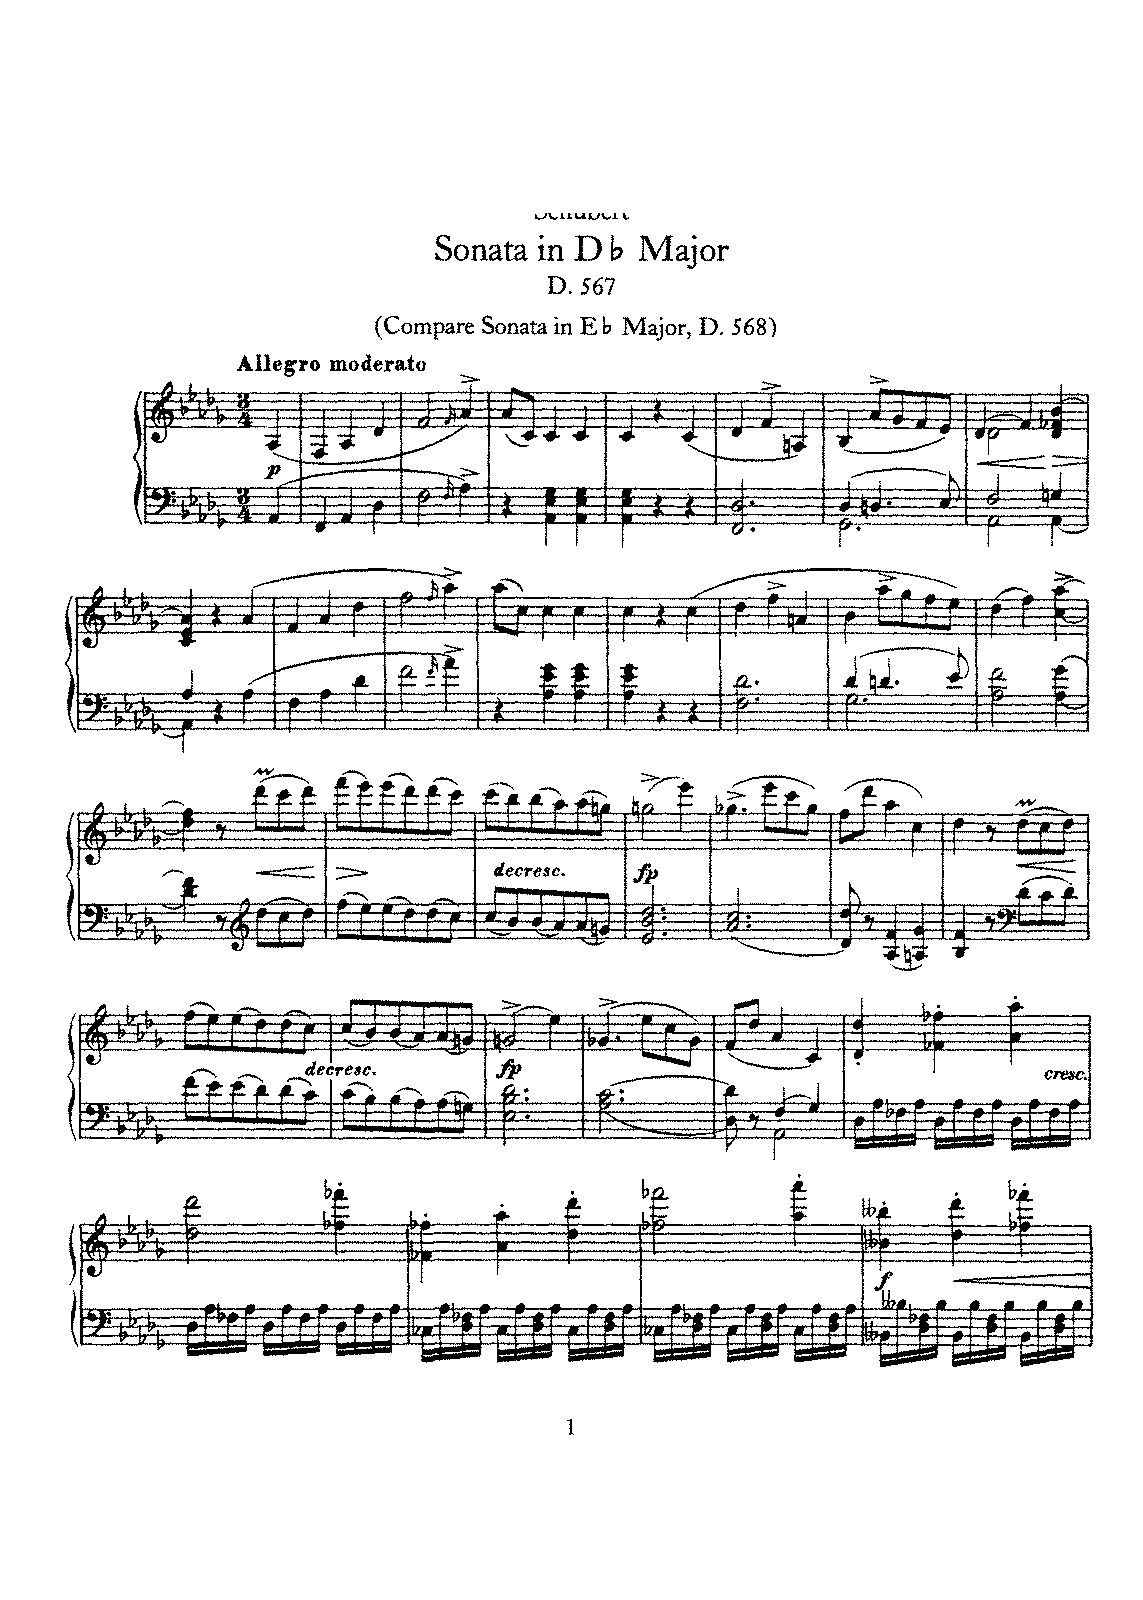 Schubert - D.567 - Piano Sonata in Db Major.pdf